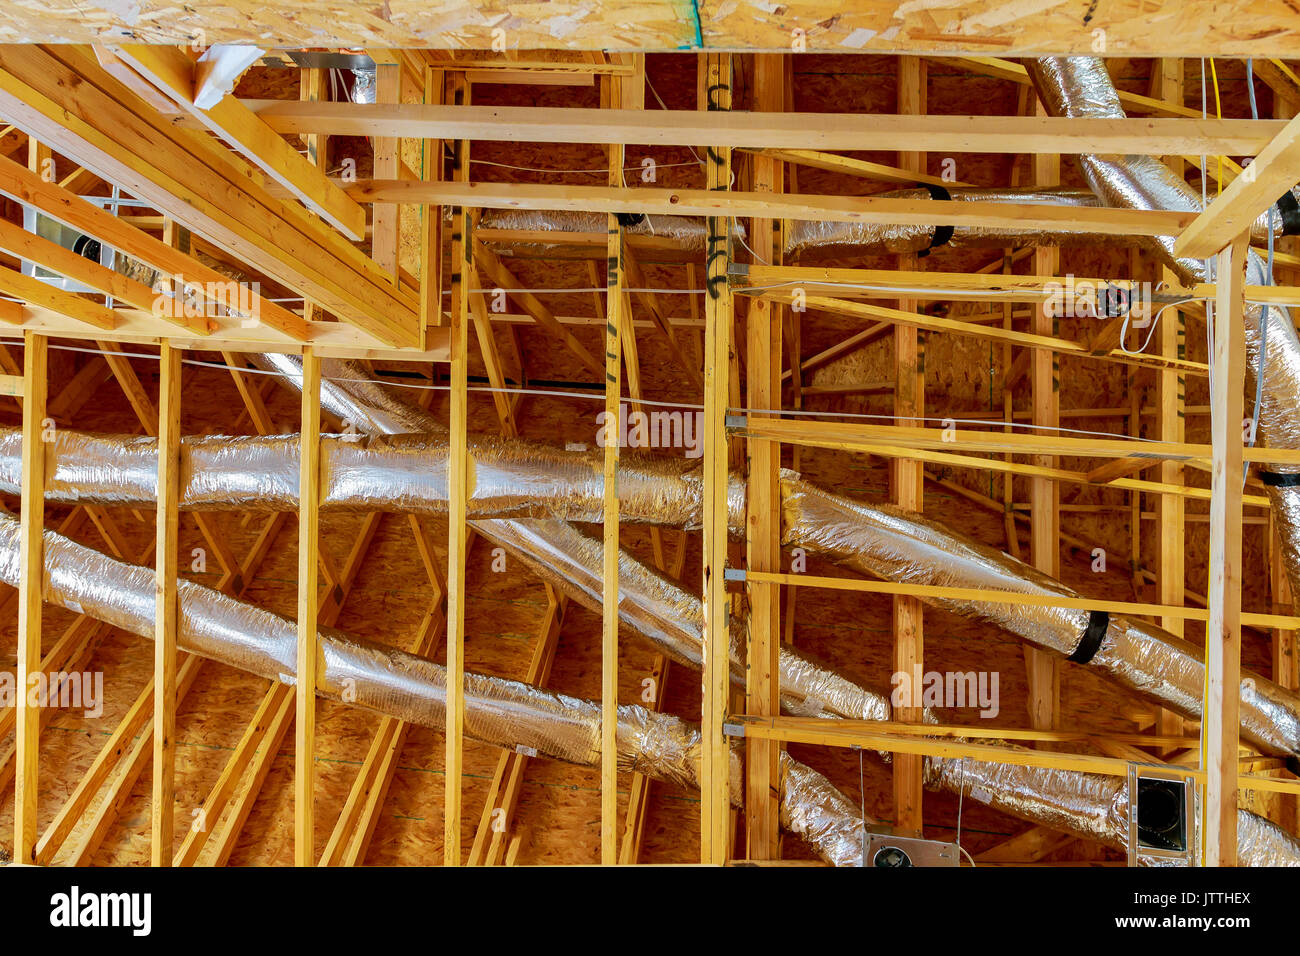 39984e9ebaf4 wiring house frame library wiring diagramthe frame building or a house with  basic electrical wiring stock